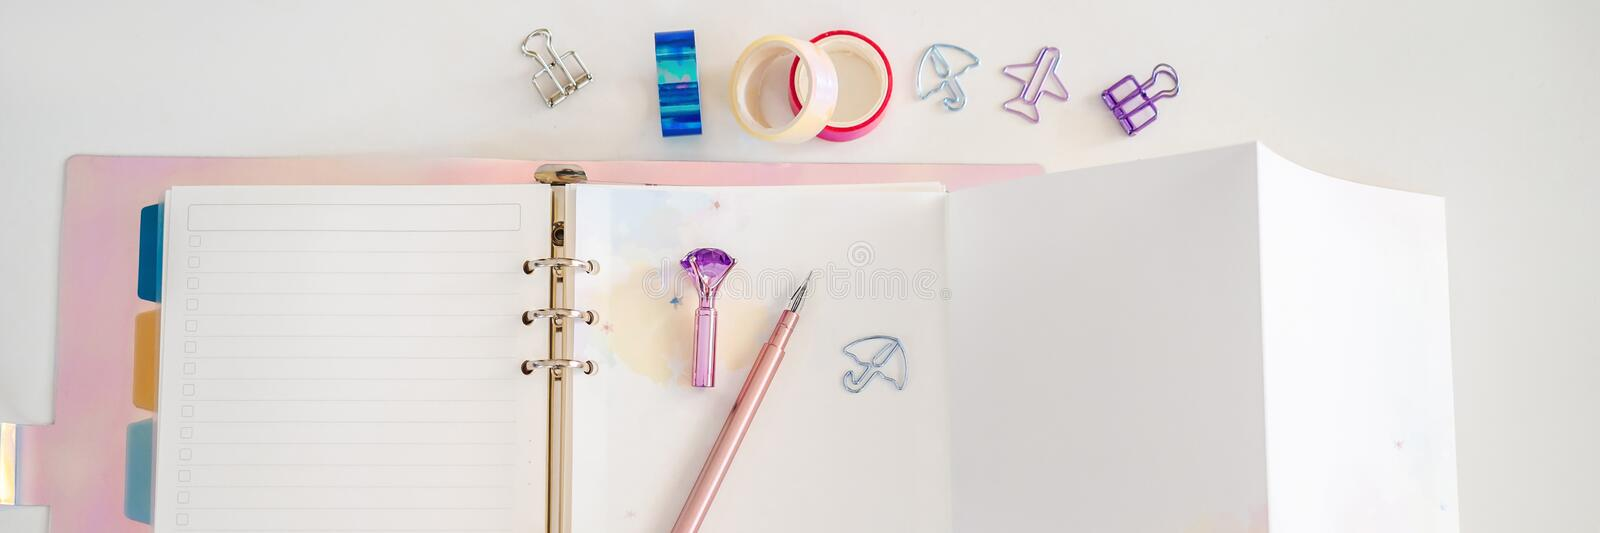 Notepad and stationery on white background. Planner for business and study. Fans of stationery BANNER, LONG FORMAT. Notepad and stationery on white background stock image